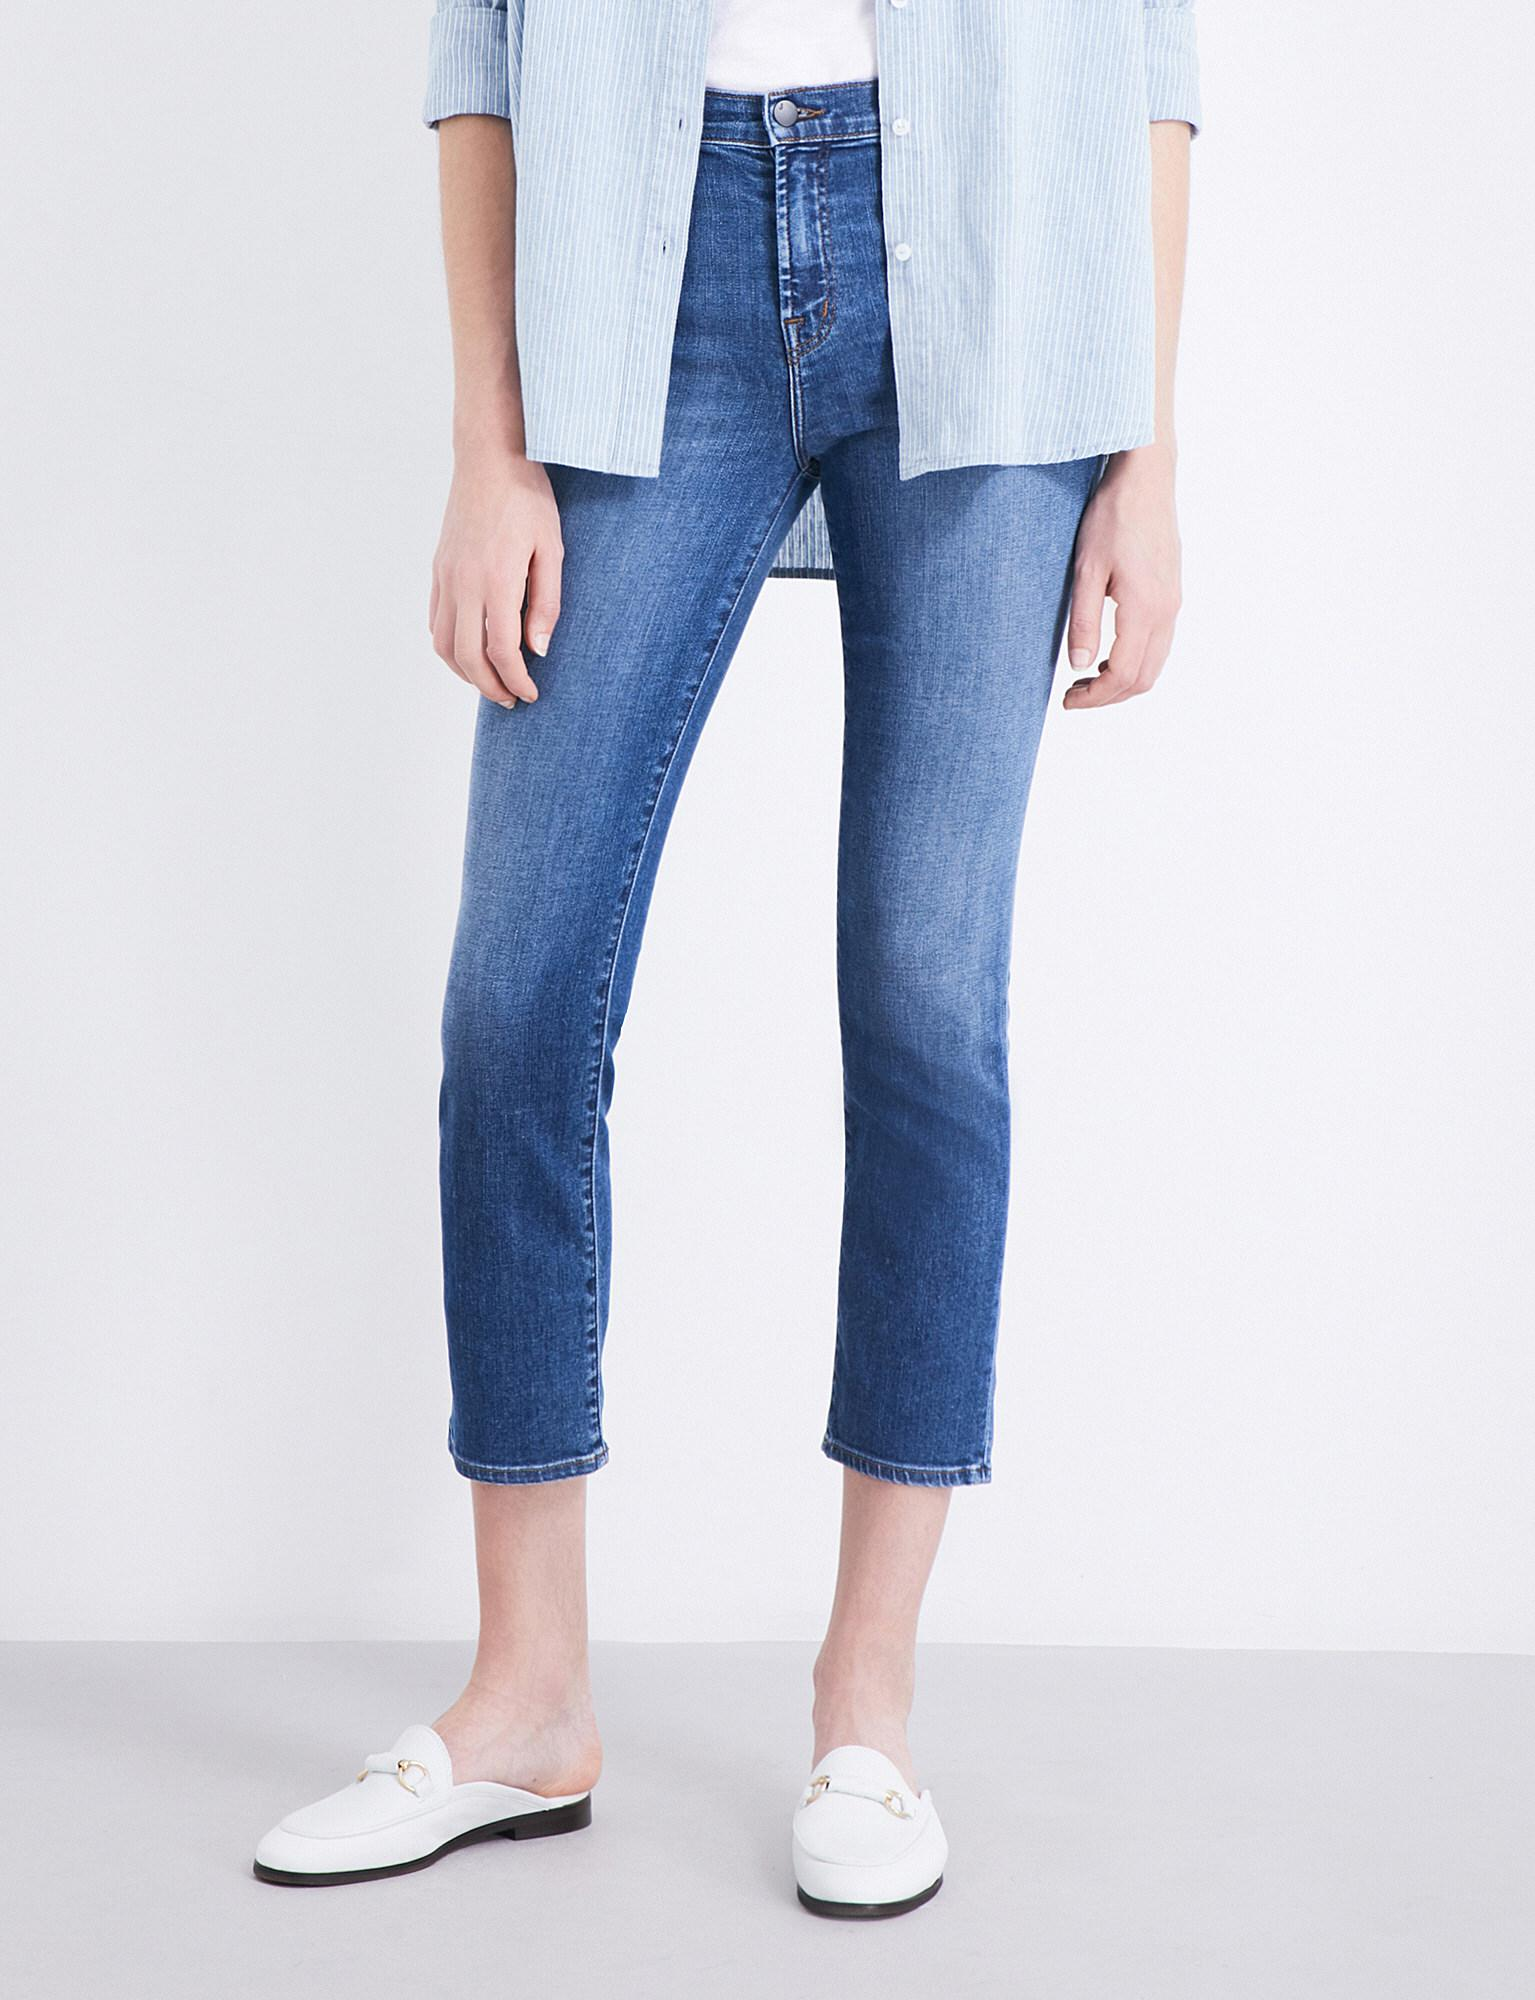 3a6c4f30ea8c Lyst - J Brand Ruby Straight Cropped High-rise Jeans in Blue